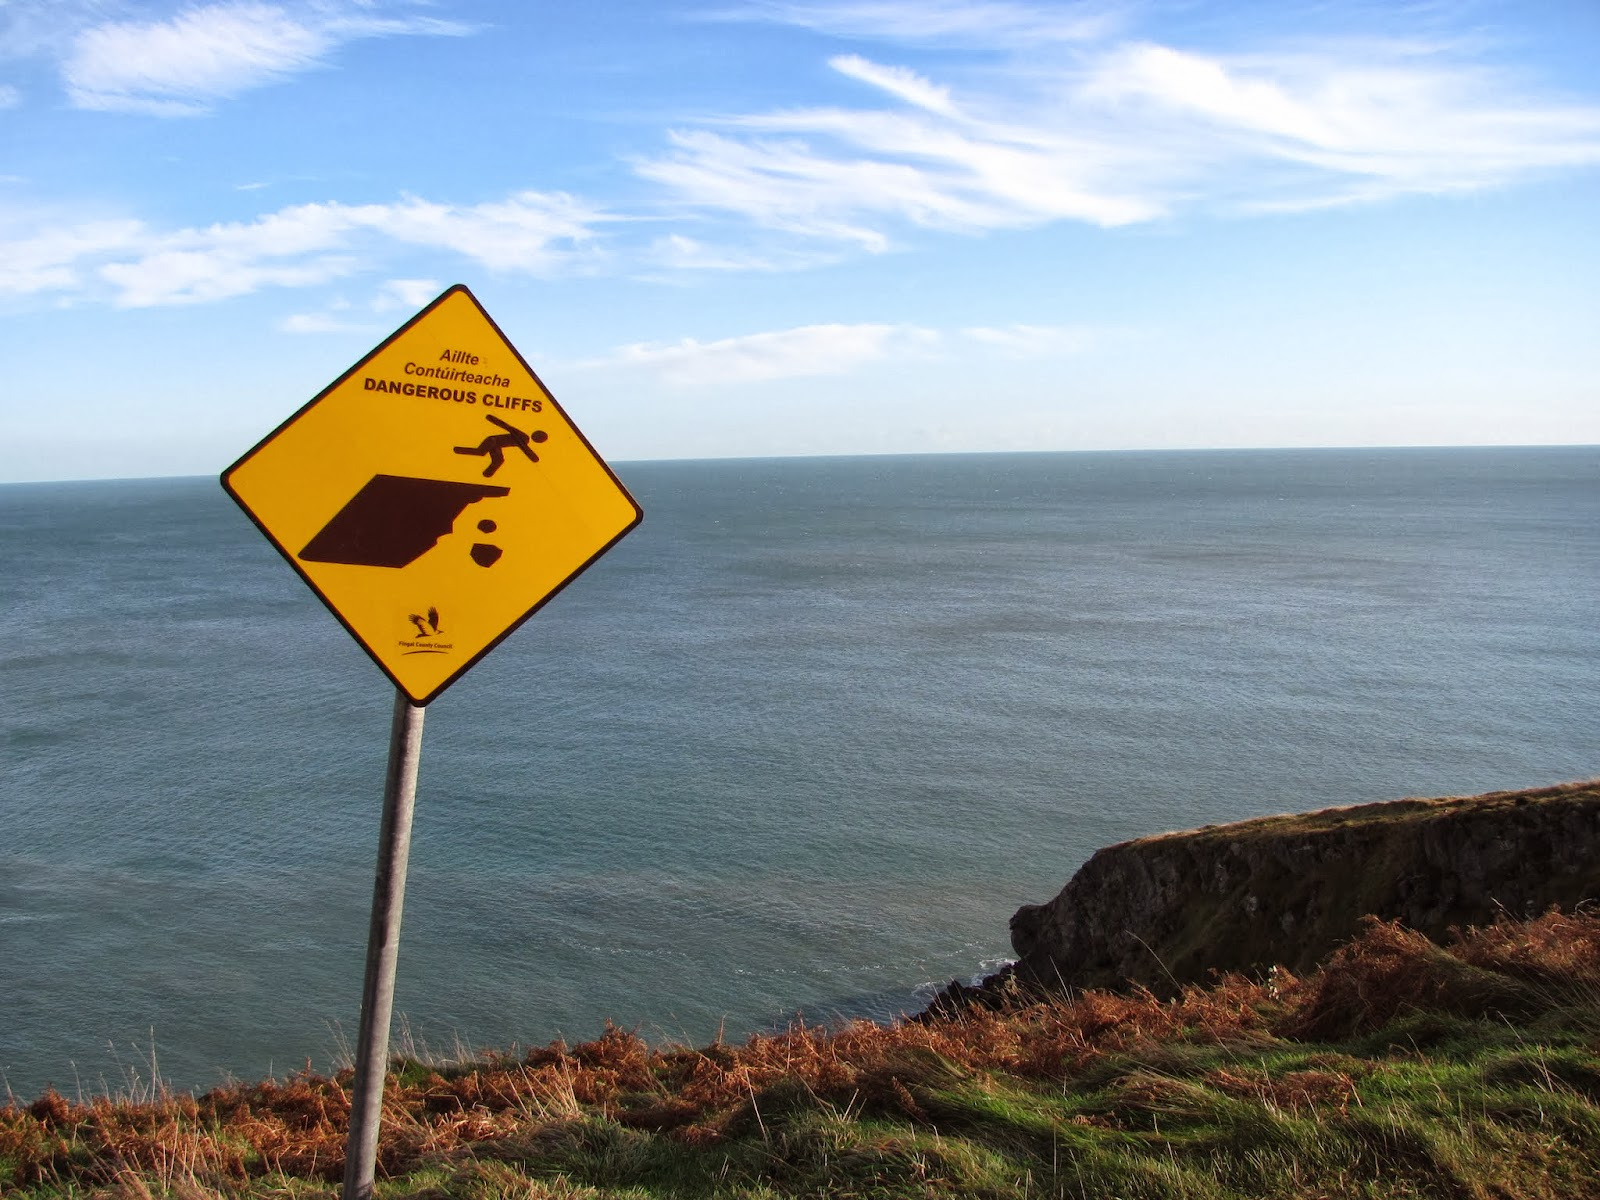 Another warning sign on Howth, Co. Dublin, Ireland